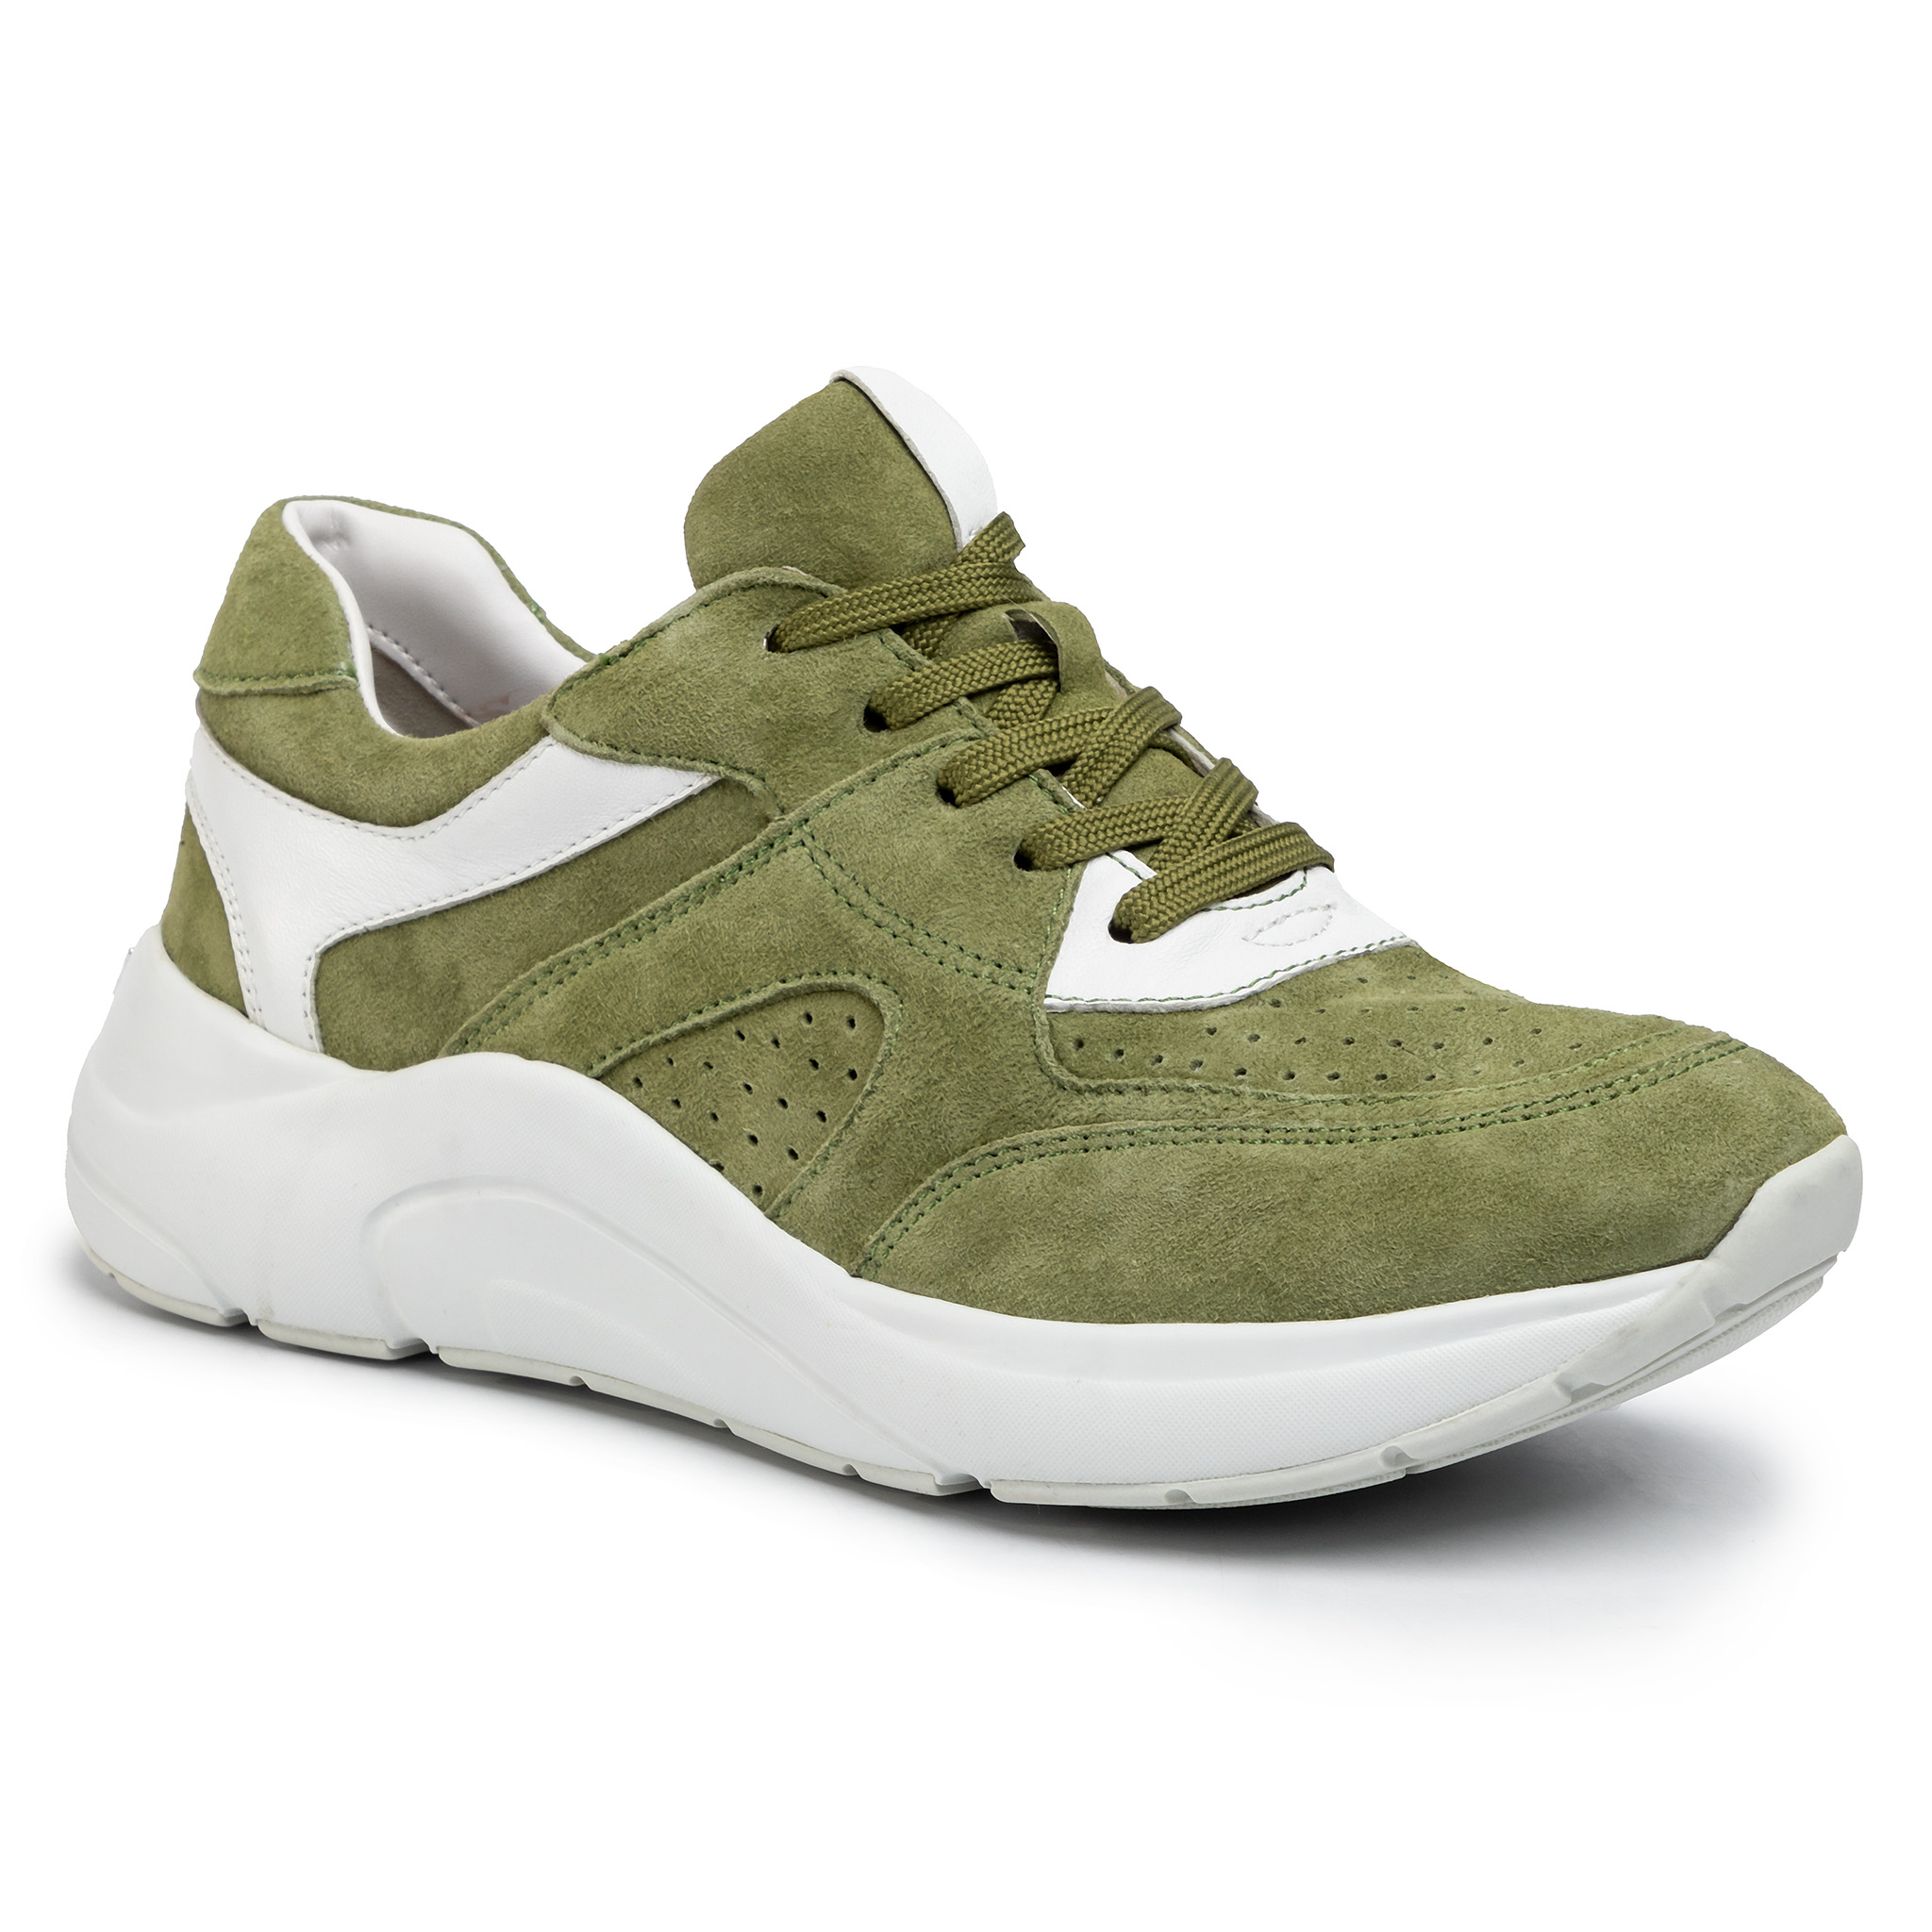 Sneakers CAPRICE - 9-23501-24 Moss White 711